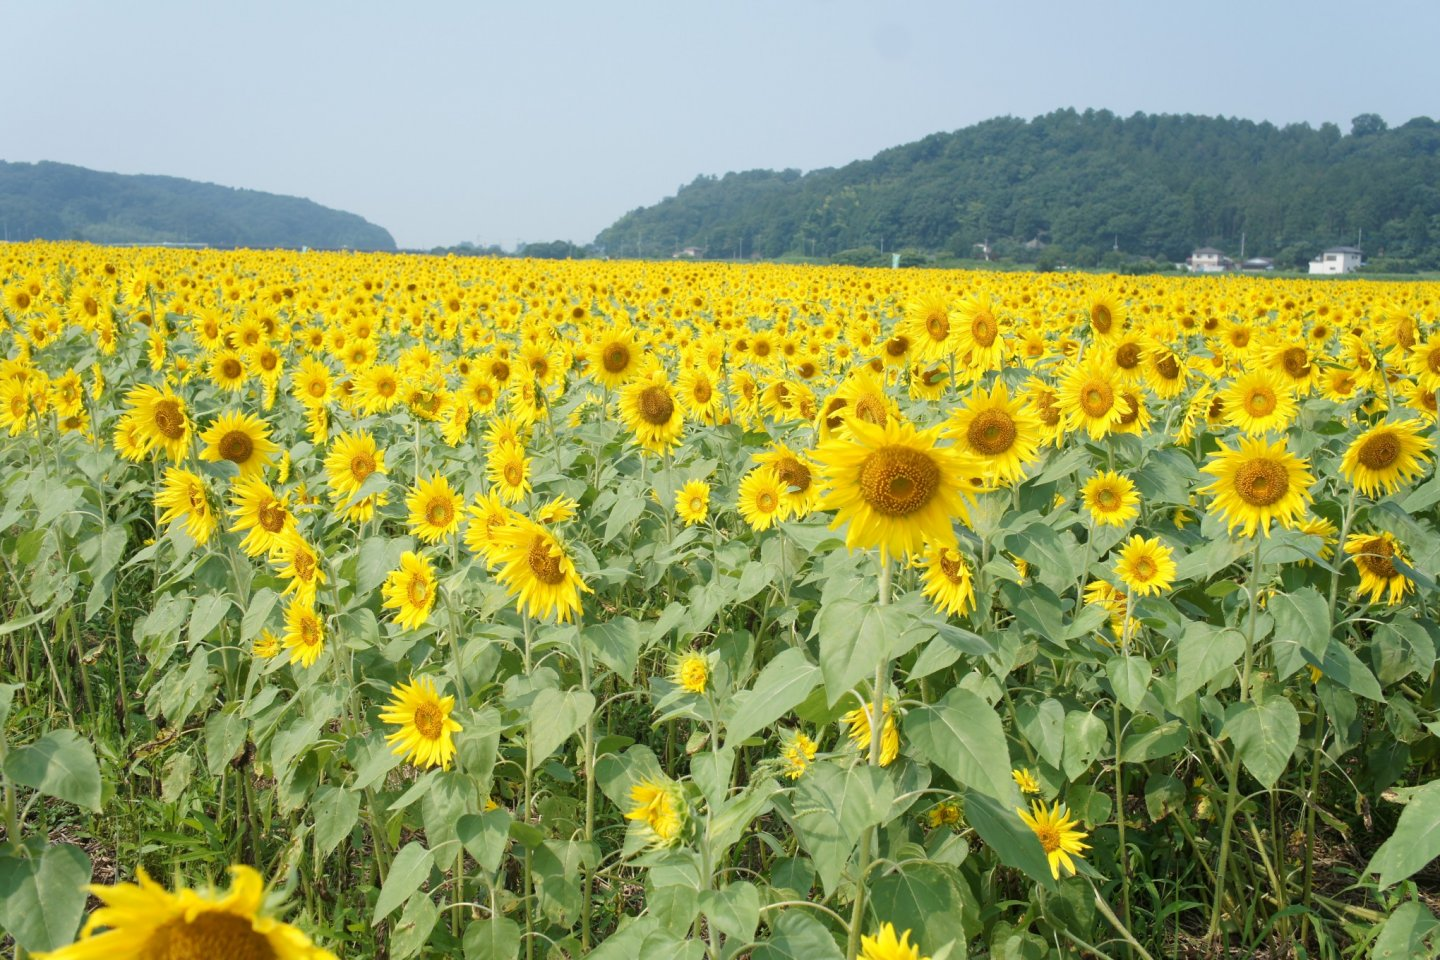 Yellow field of sunflowers stretches into the horizon